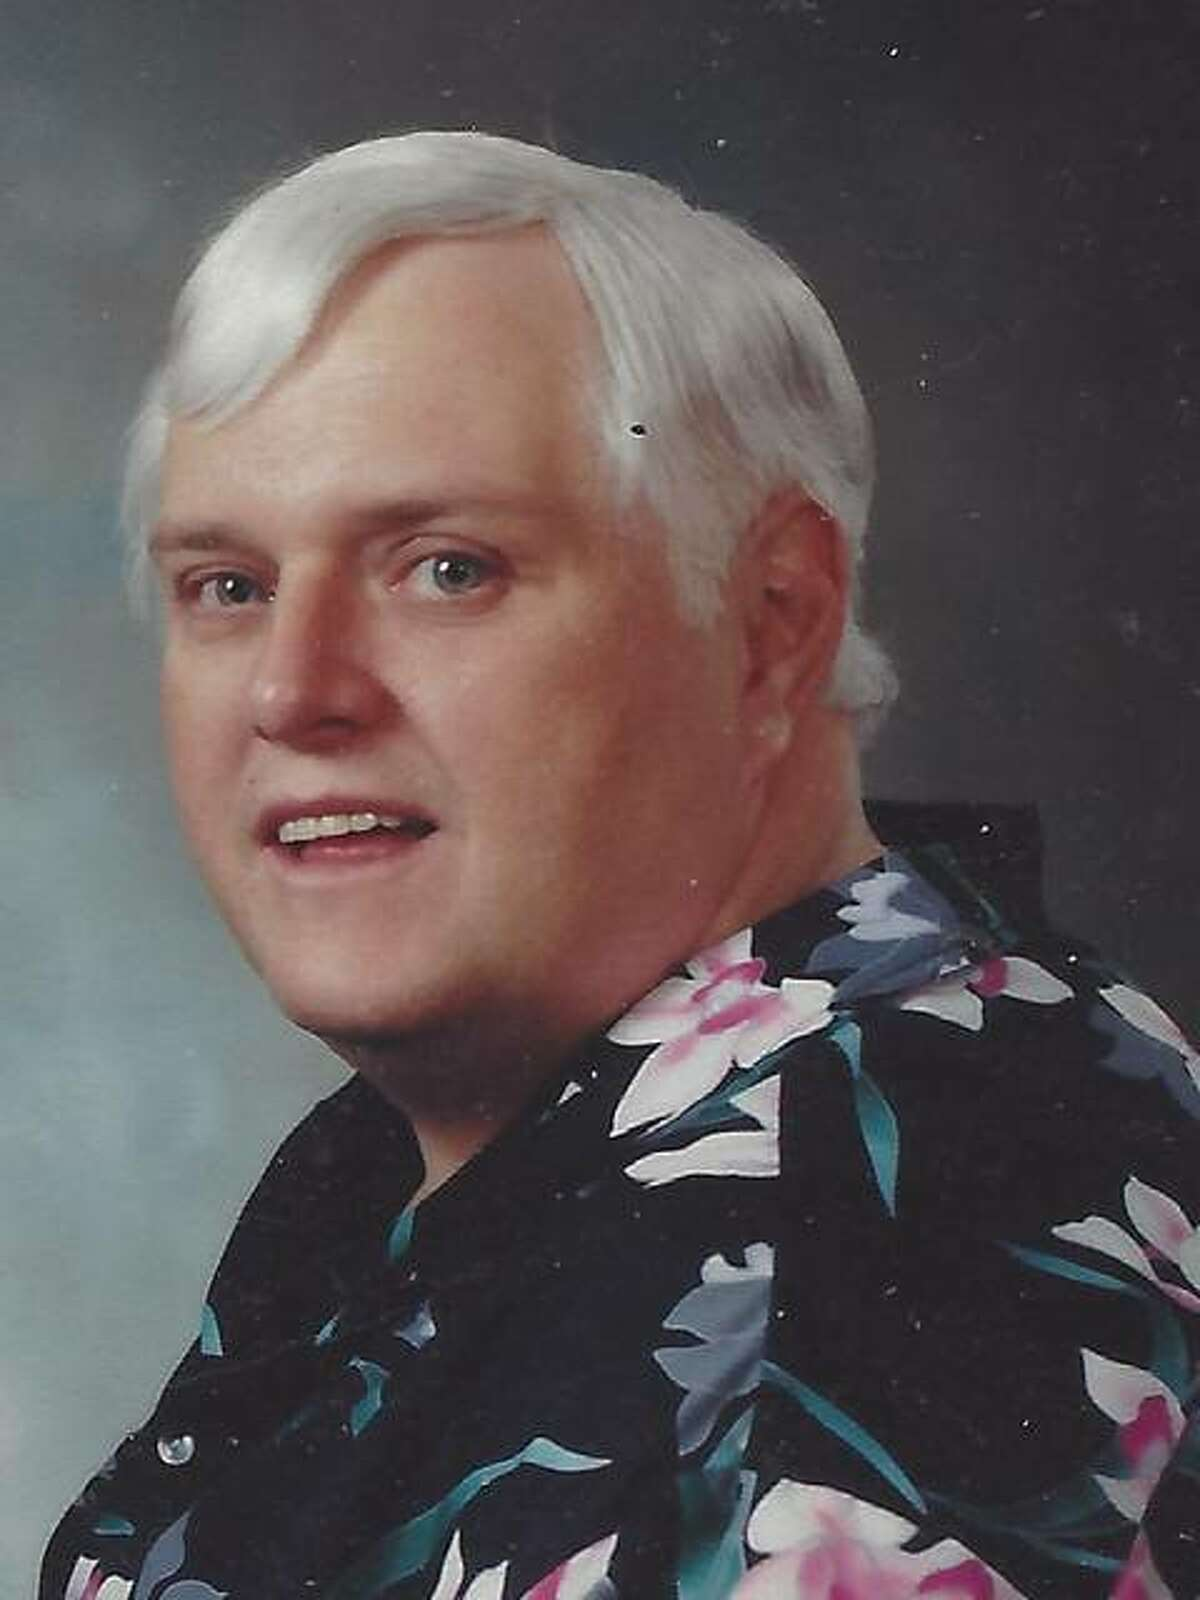 Paul Sauls in the 1980s, during his early years at Marks Mortuary